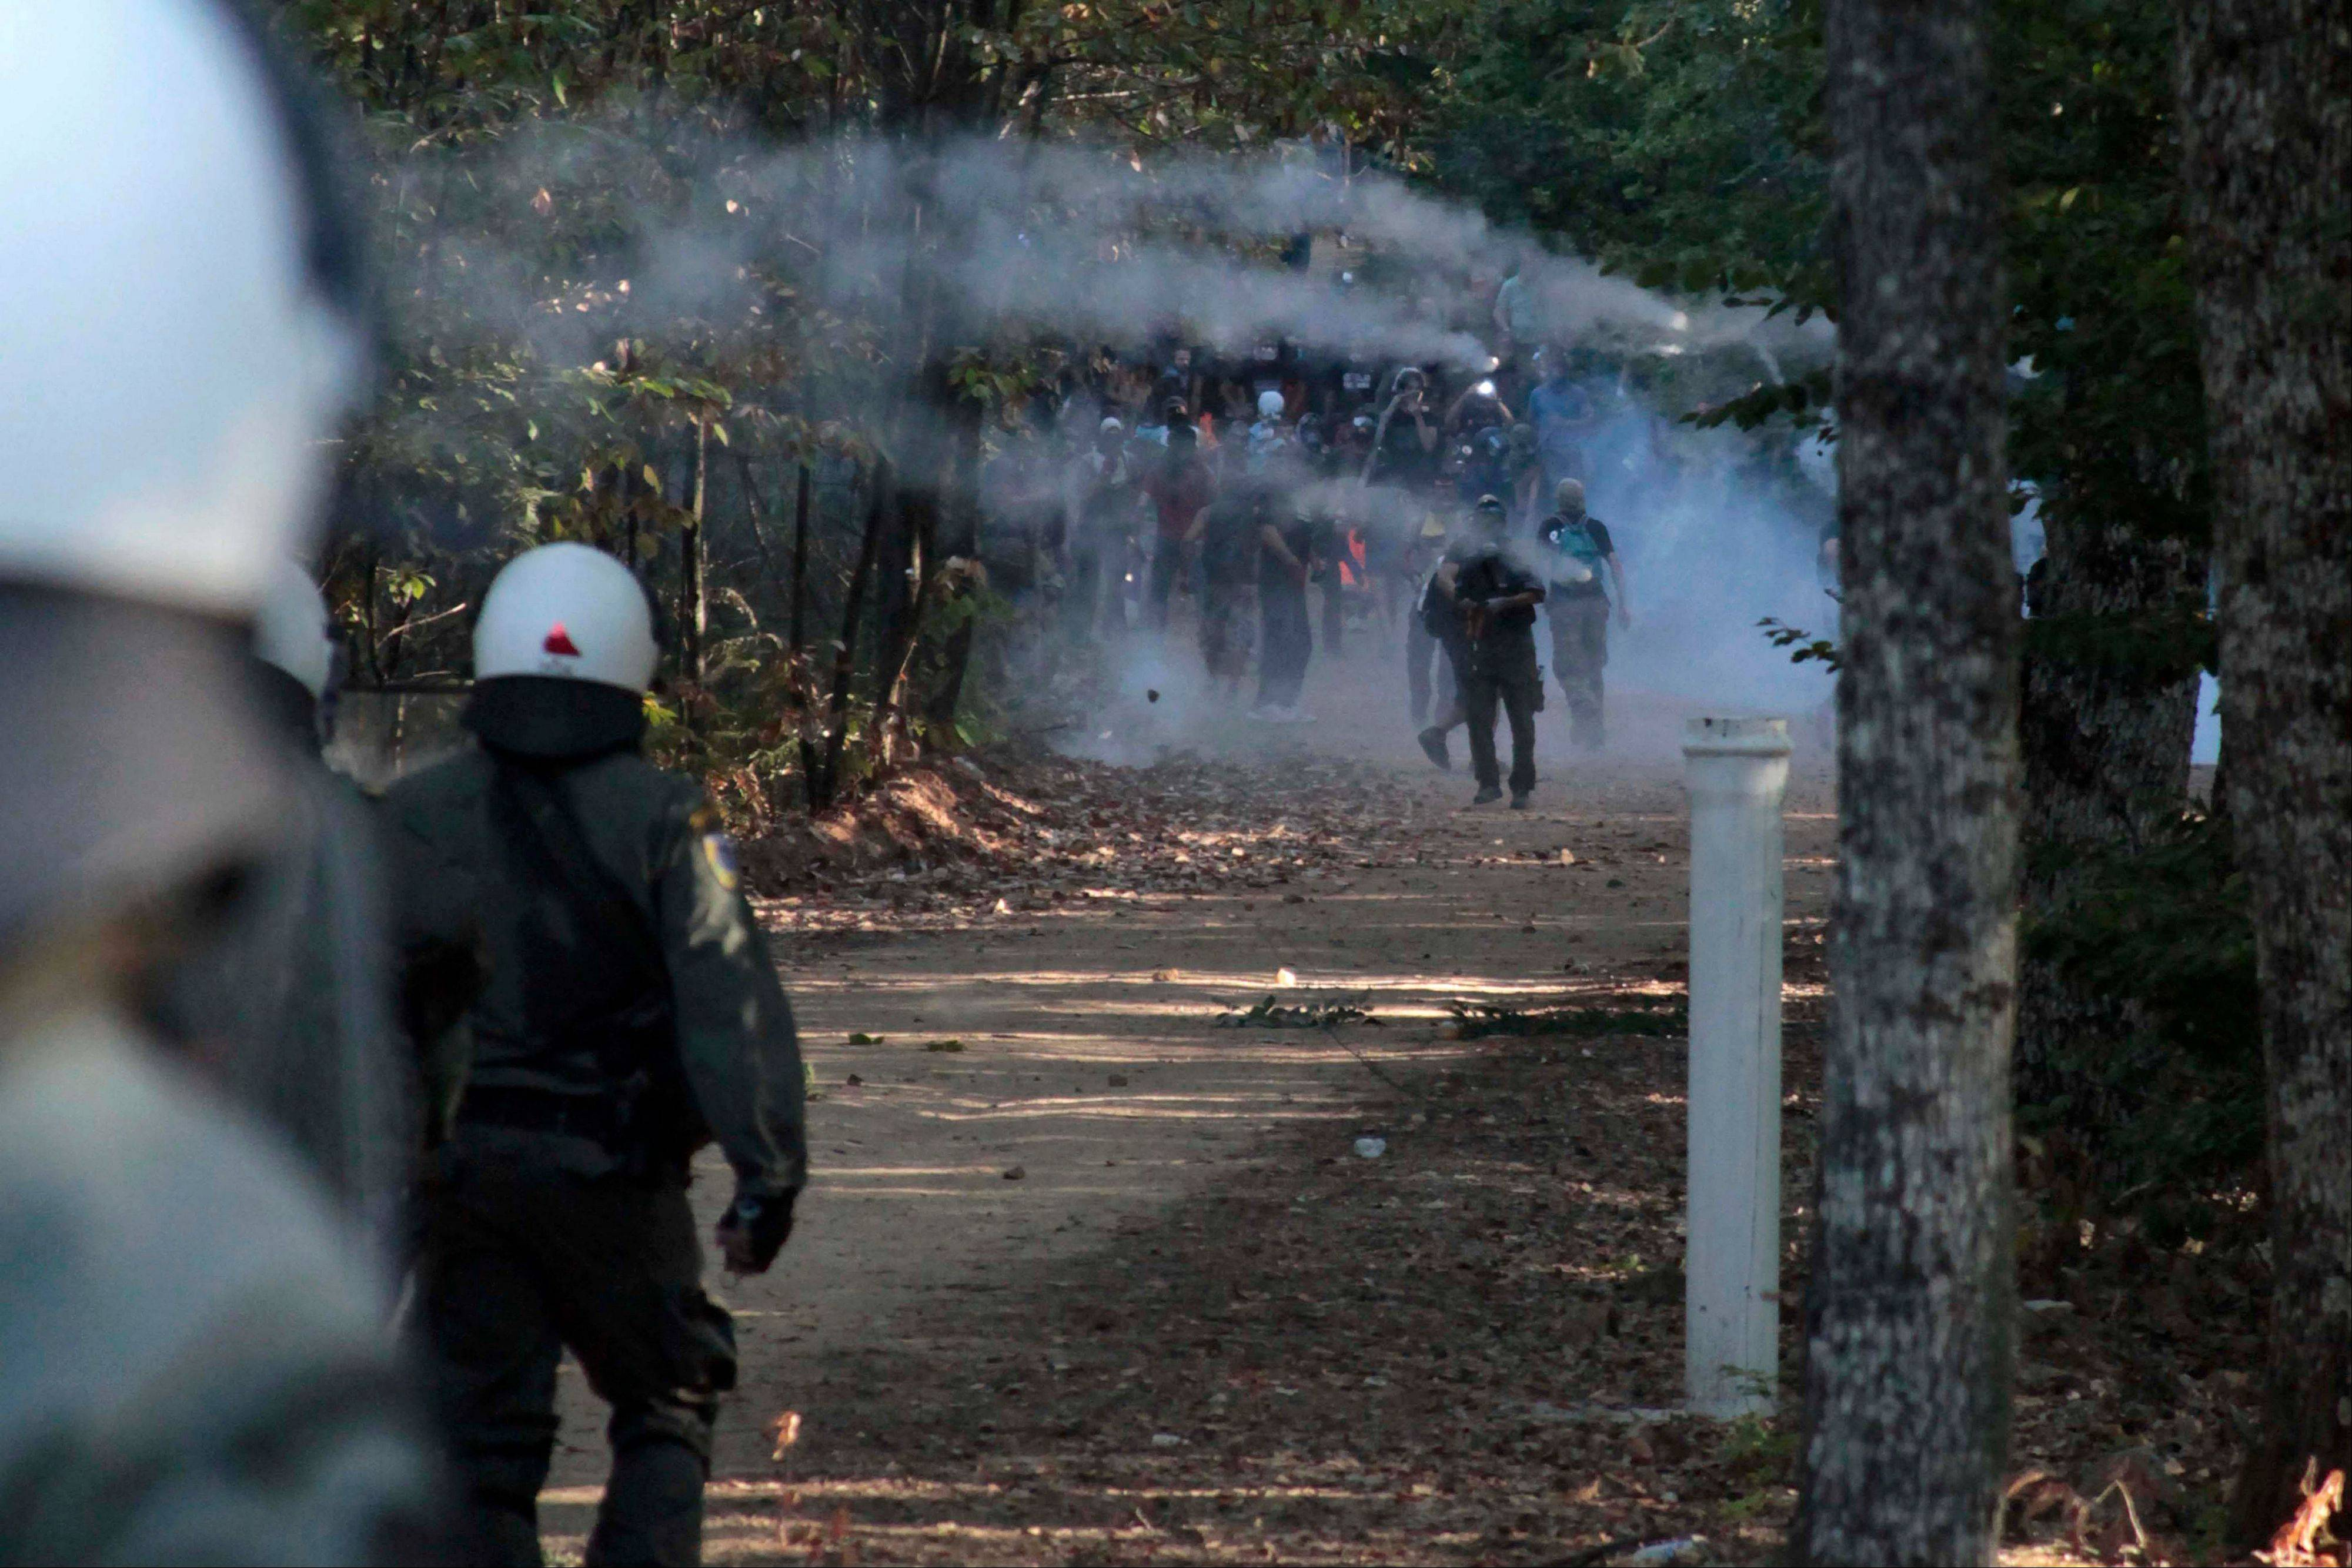 Riot police confront protesters in northern Greece's Halkidiki peninsula on Sunday. Hundreds of protesters have battled riot police for hours over plans for a gold mine in northern Greece's Halkidiki peninsula. Police say protesters threw firebombs at them, setting ablaze a forested area on the site.